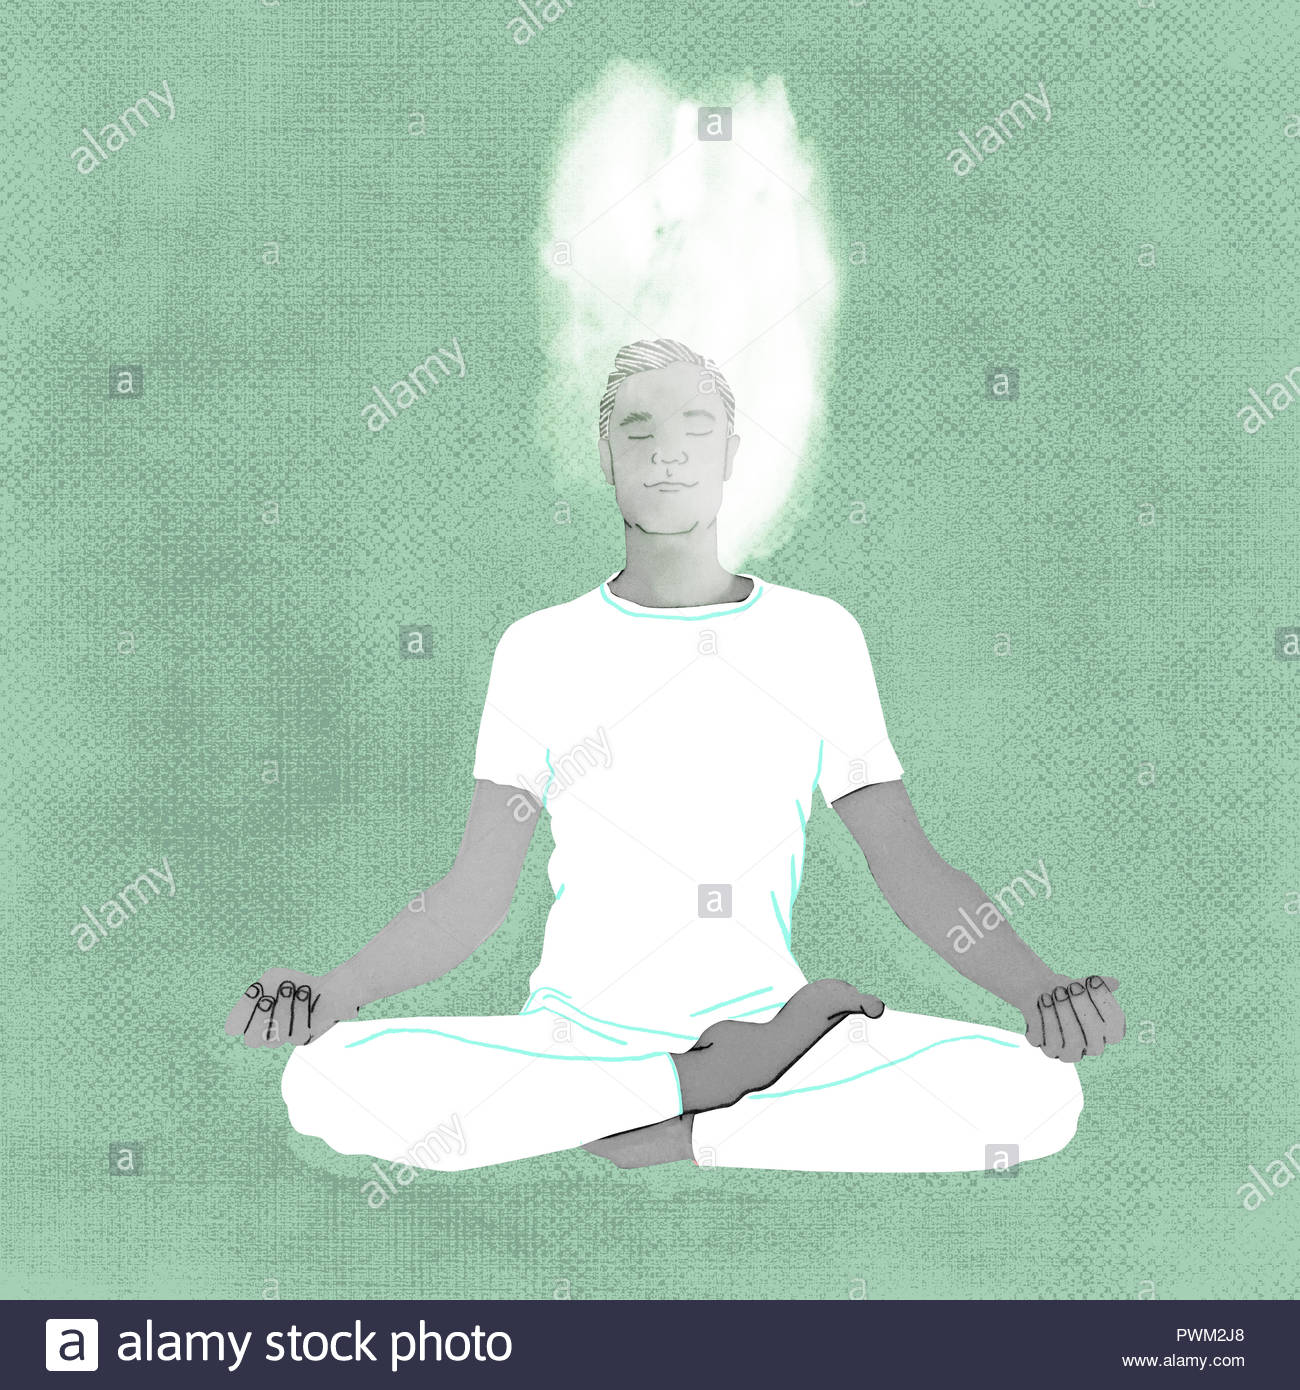 yoga man in lotus meditation pose - Stock Image